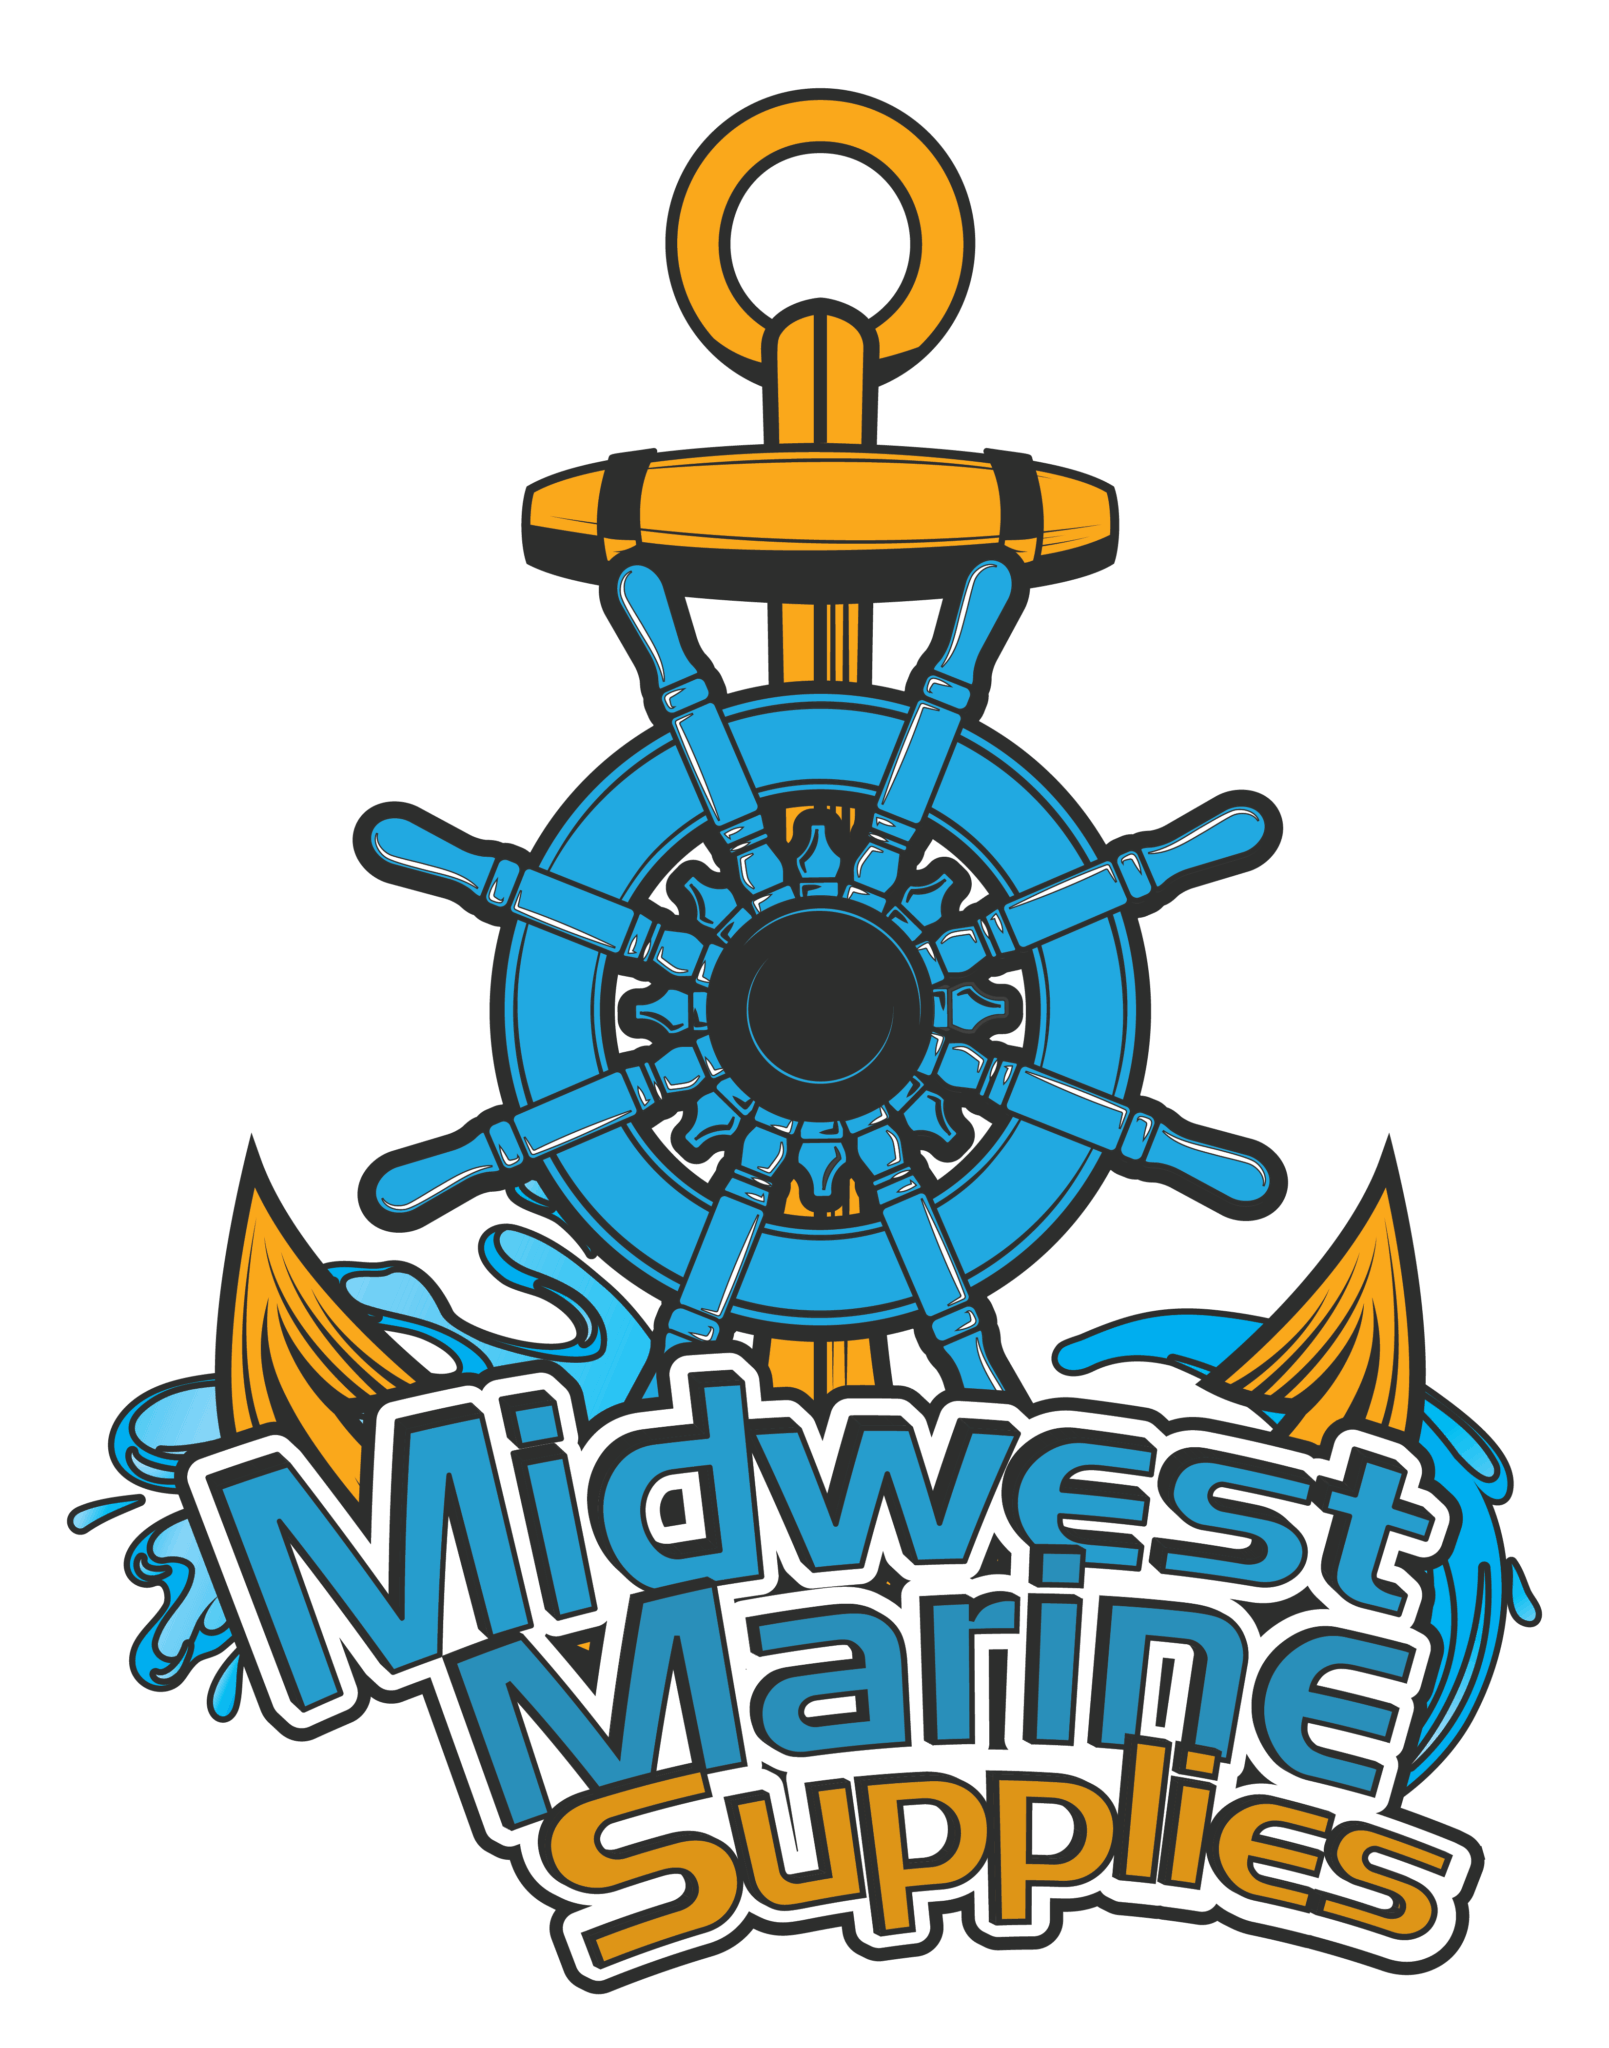 Midwest Marine Supplies